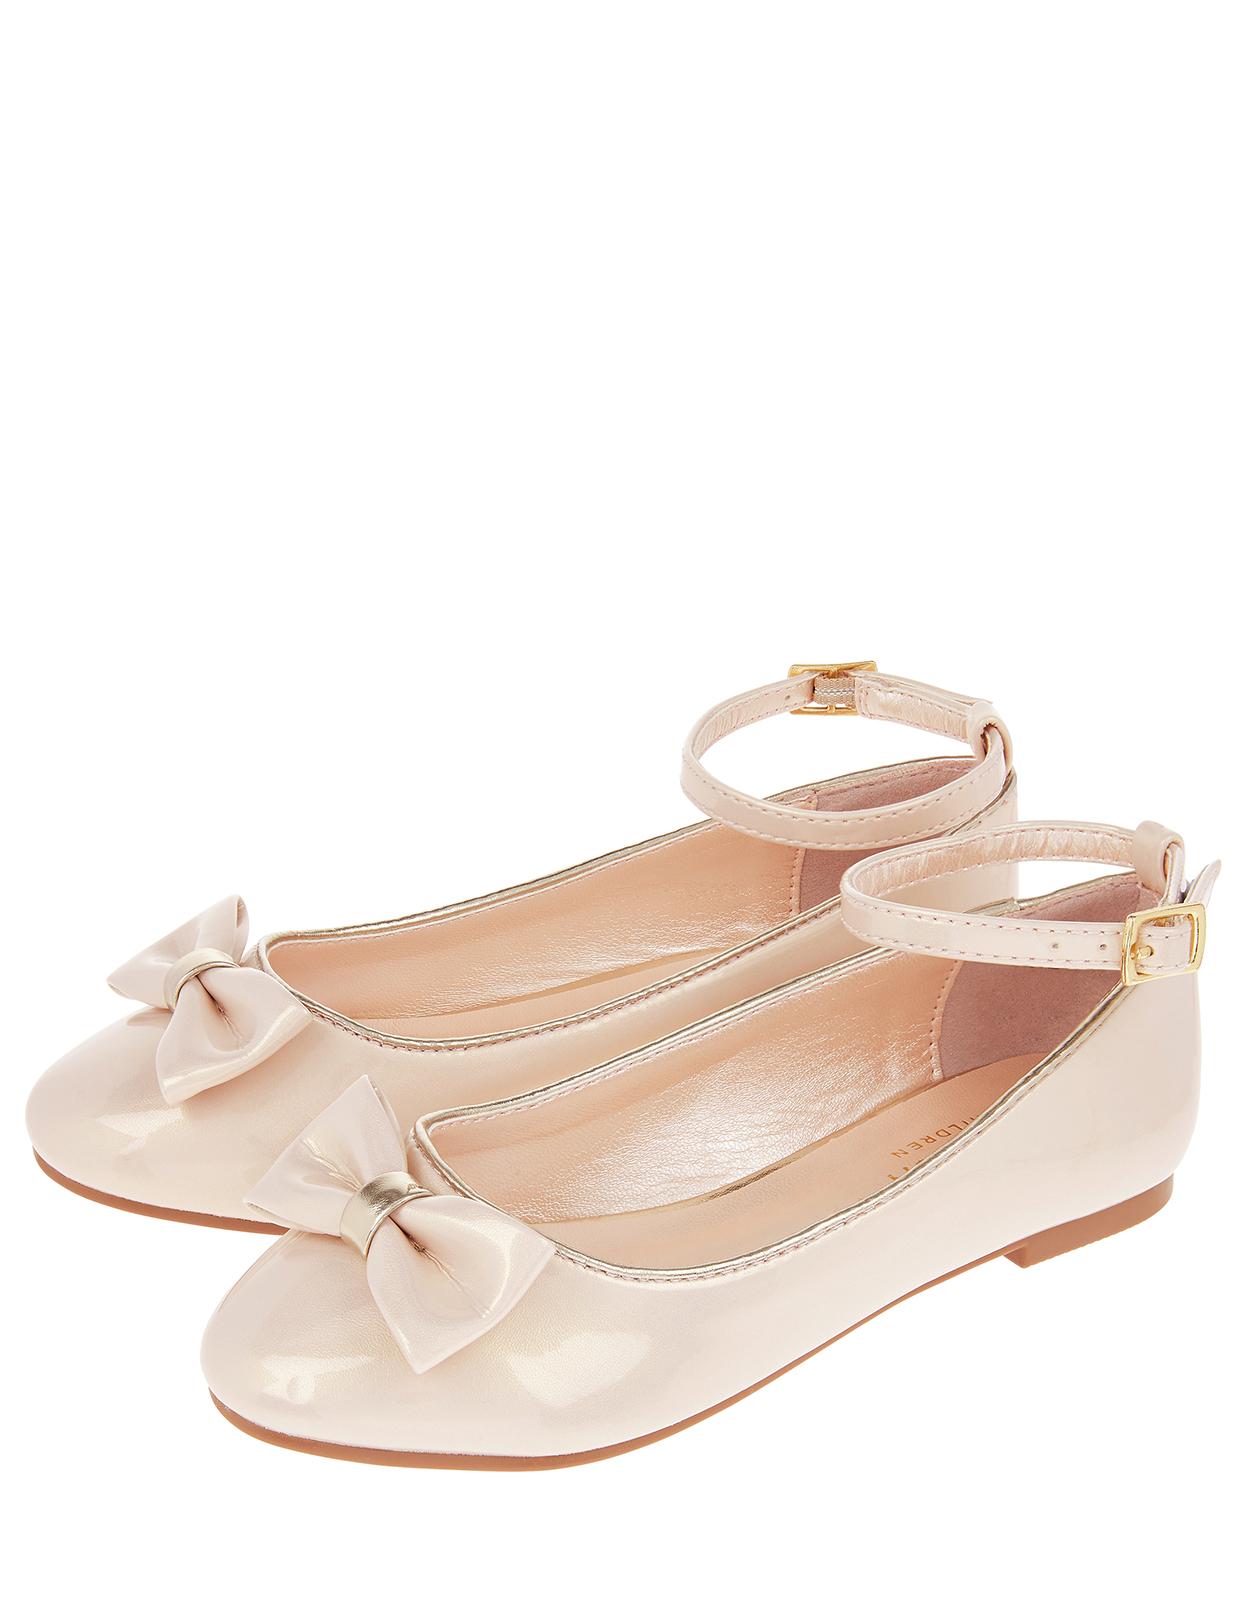 Monsoon Danielle Shimmer Patent Bow Ballet Pumps